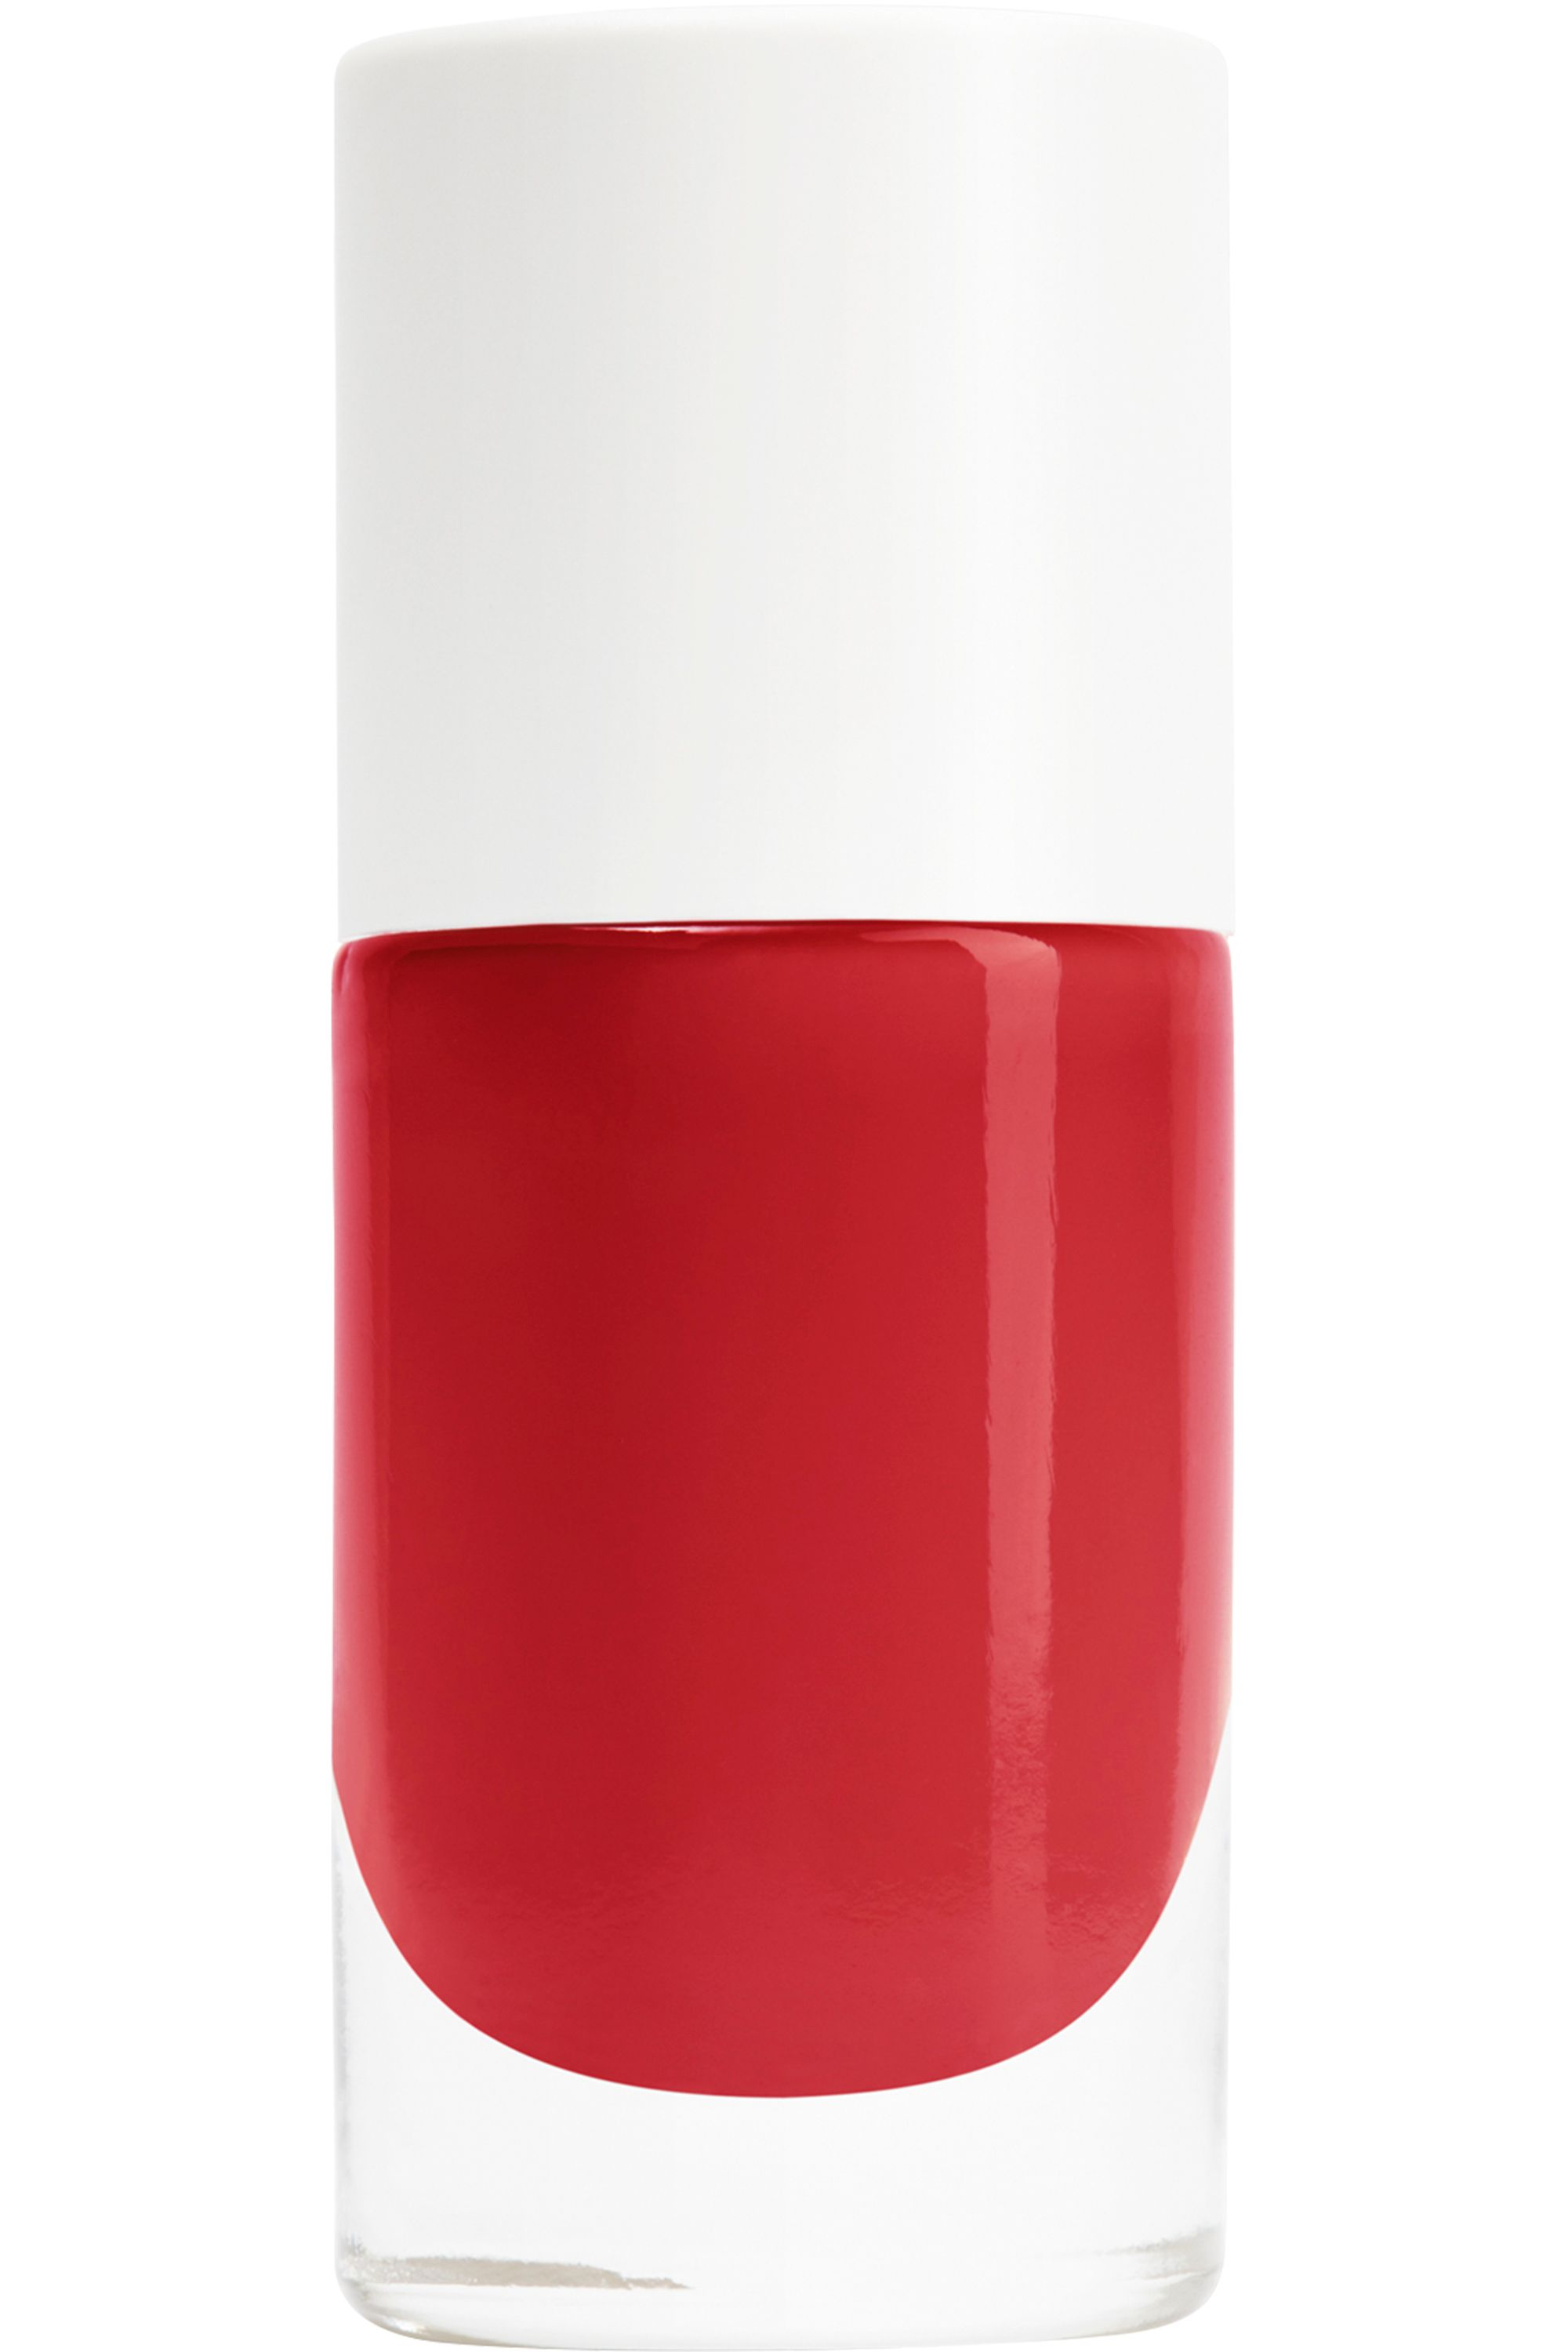 Blissim : Nailmatic - Vernis à ongles Pure Color - Pure Color Judy